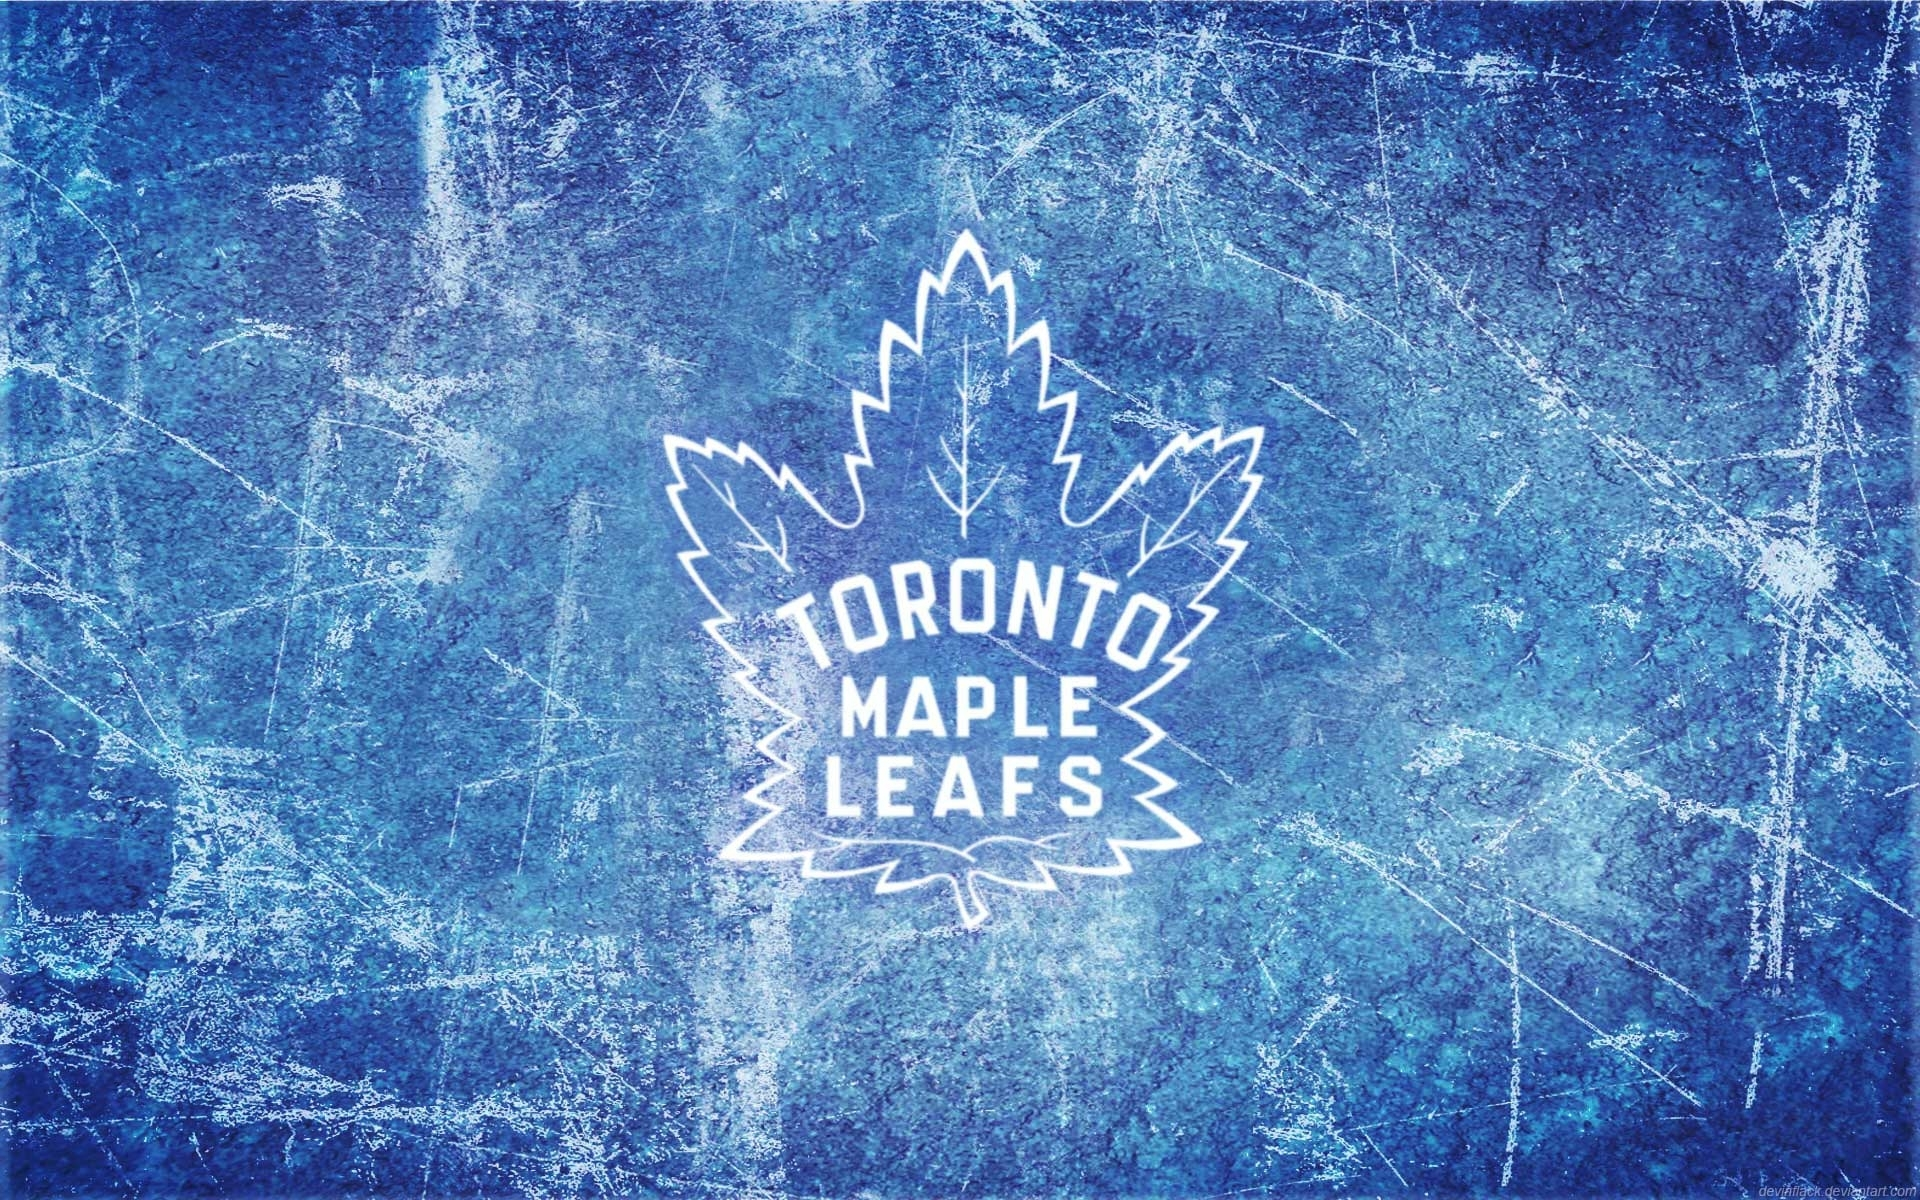 toronto maple leafs logo high definition wallpapers - http